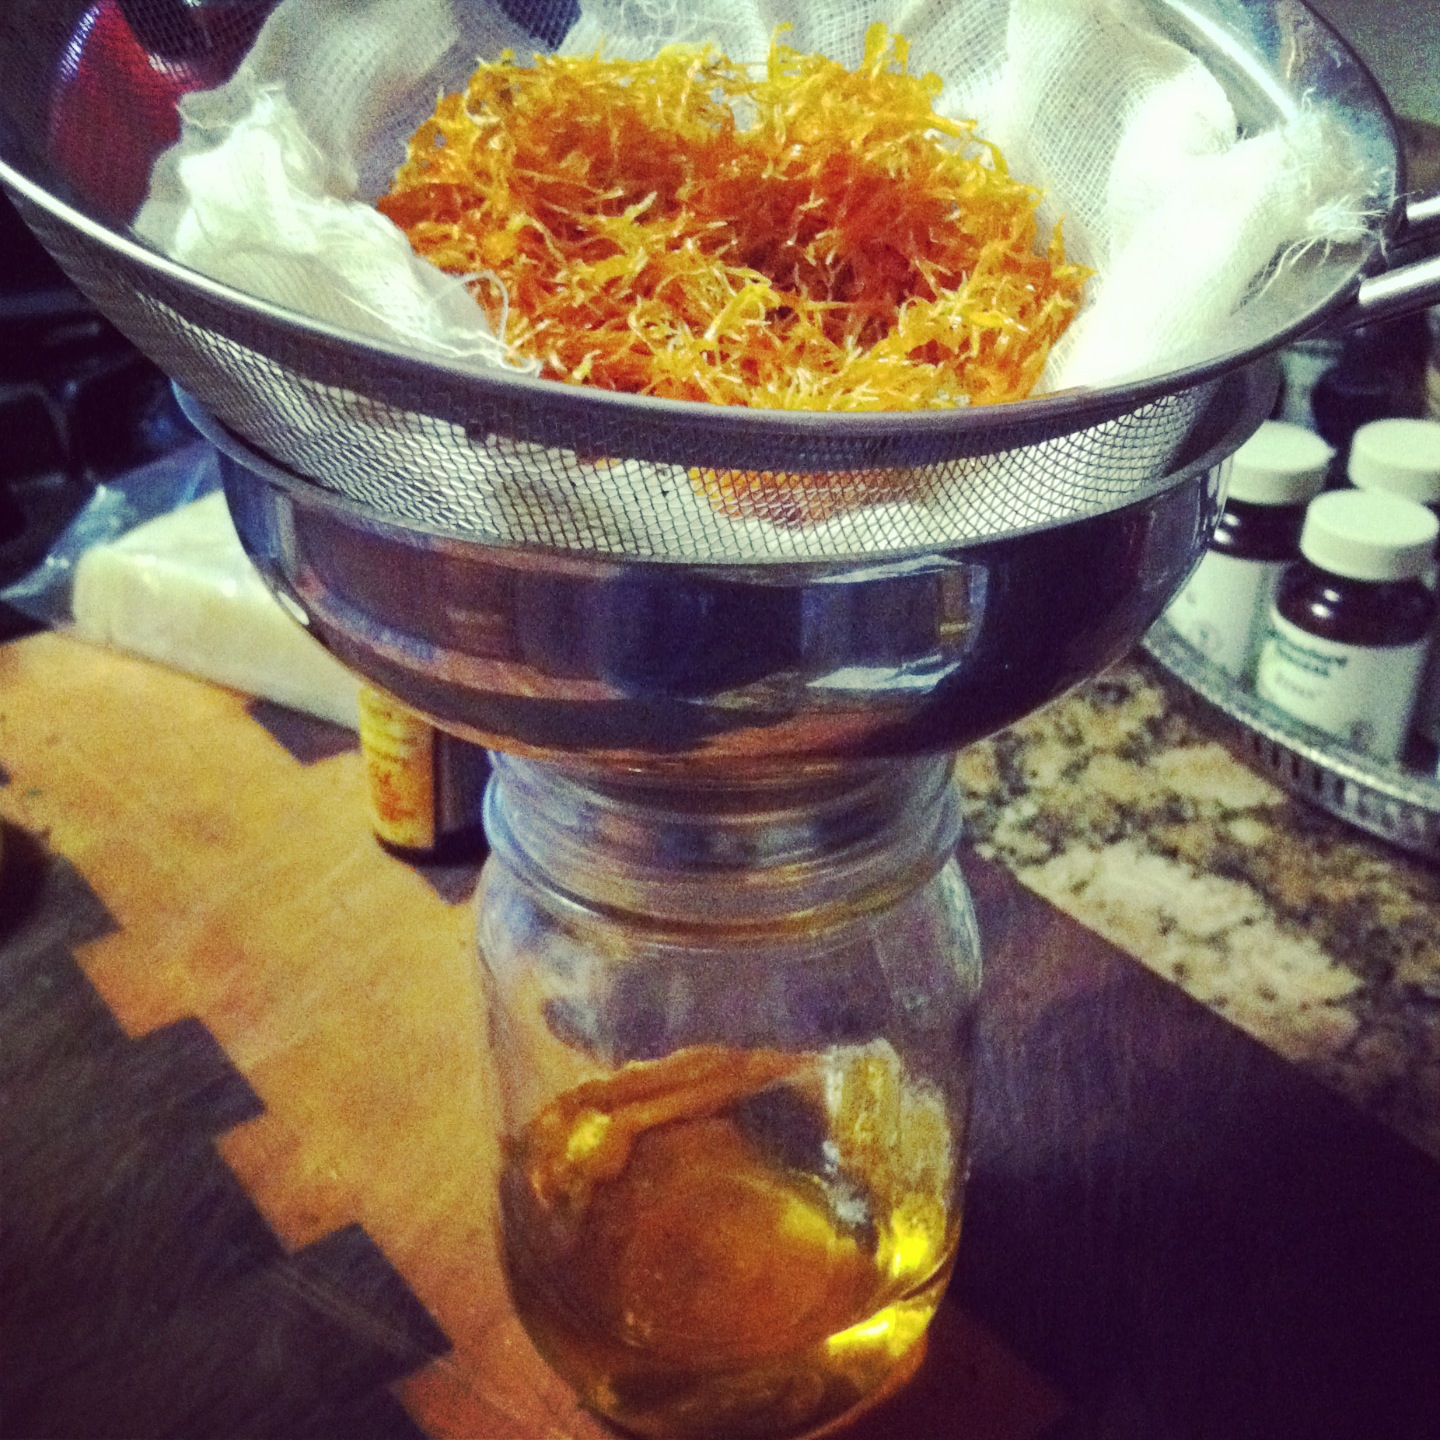 Straining homegrown calendula leaves out of an oil infusion. We grow the lavender I infuse into  alchemy*oil  as well.